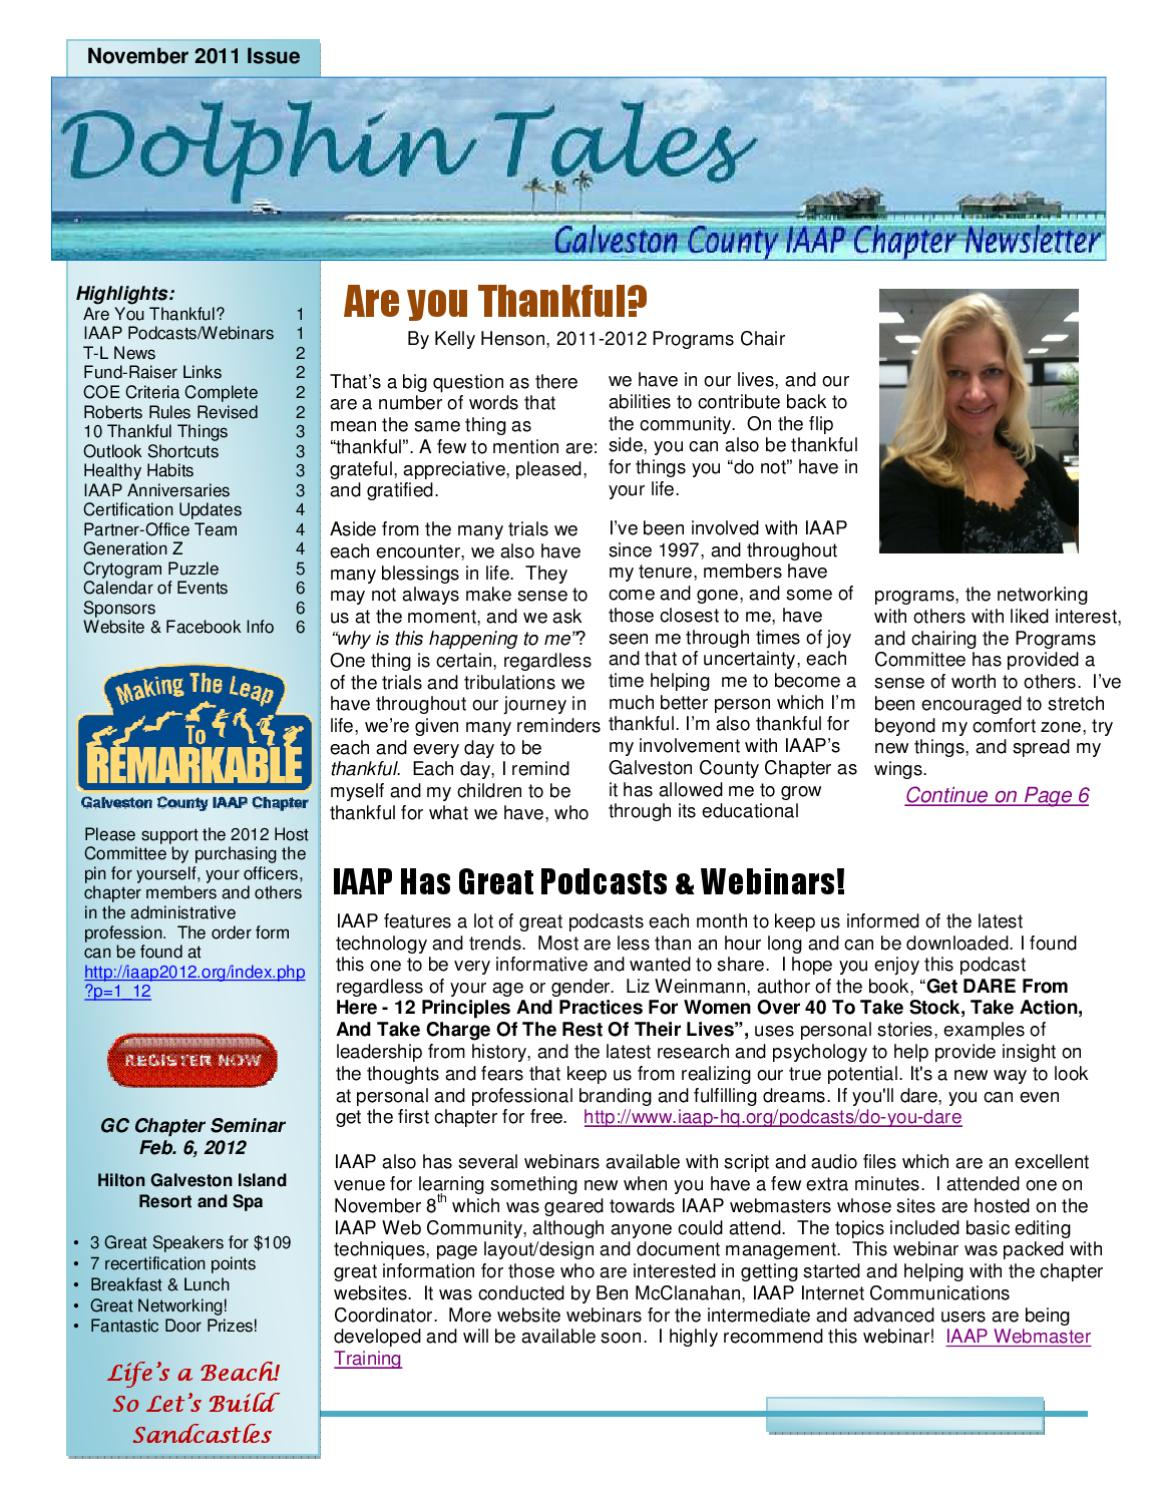 Gcc Newsletter Dolphin Tales Nov Issue By Galveston County Iaap